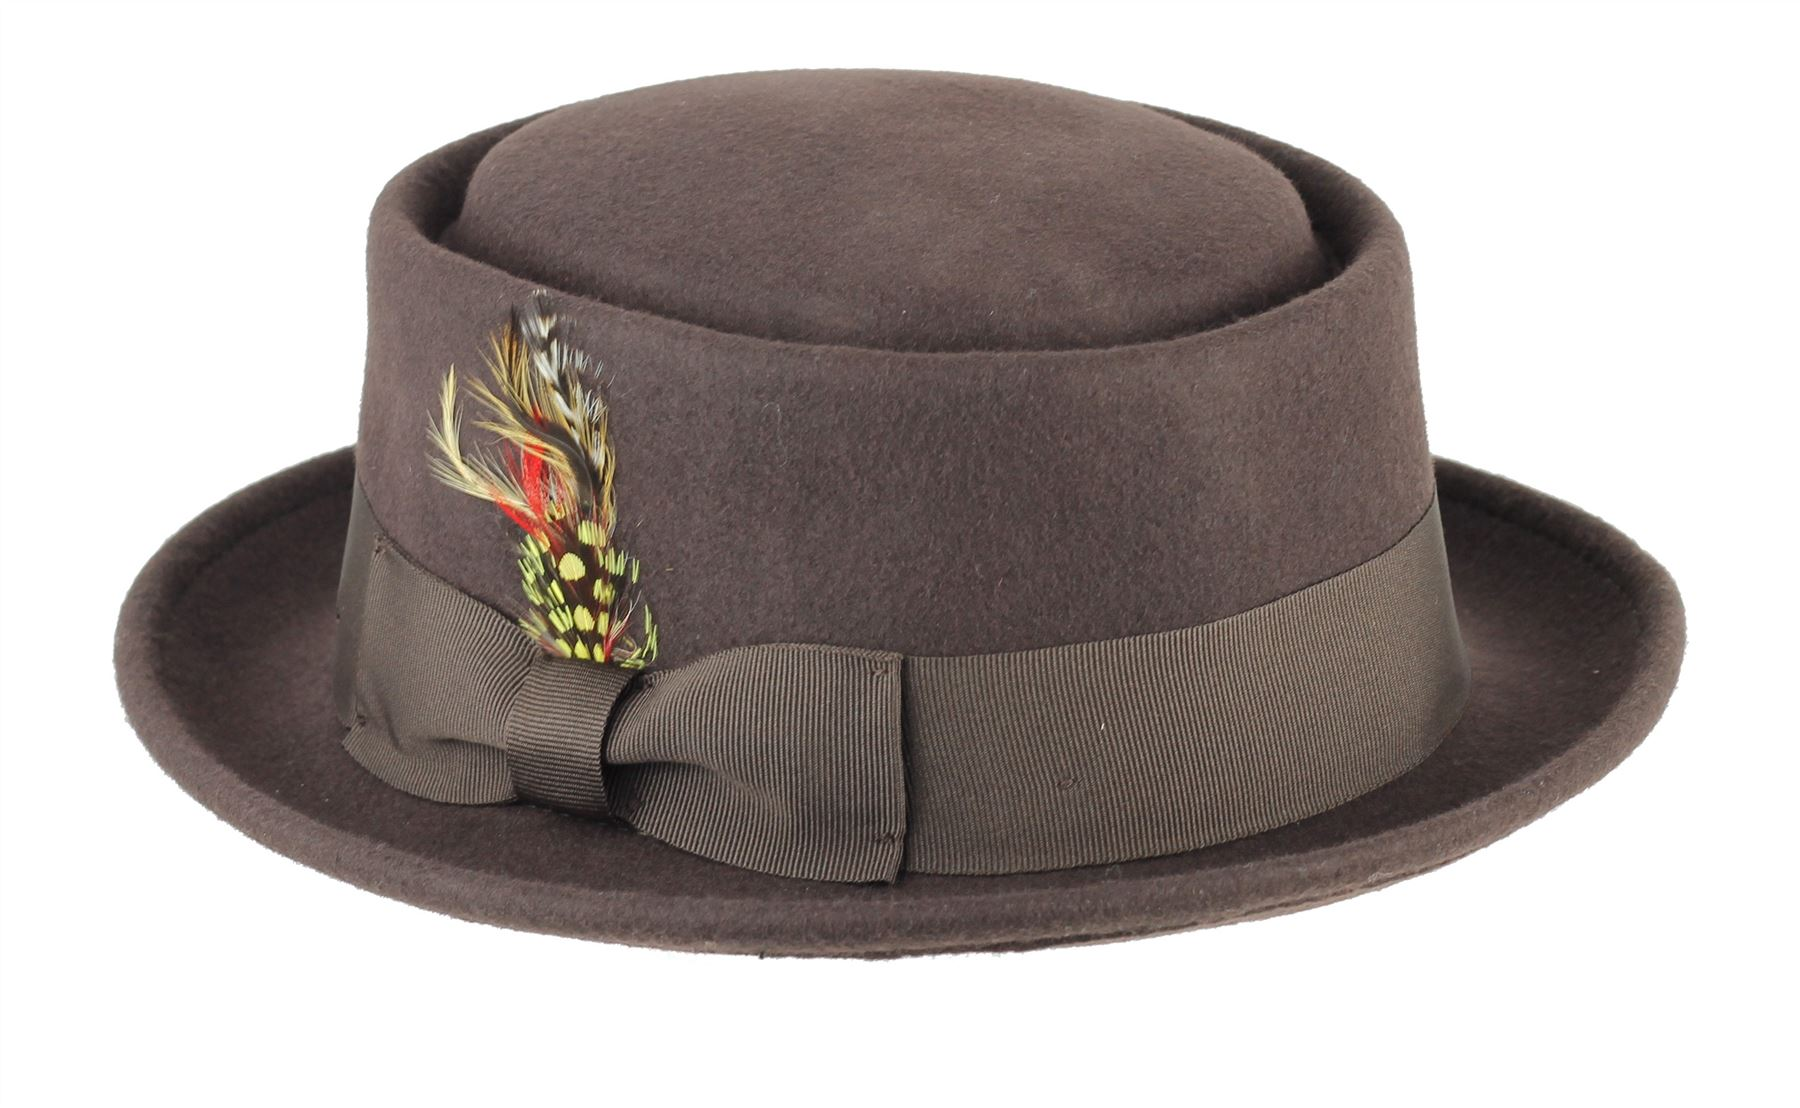 Mens Women Vintage Crushable 100 Wool Pork Pie Felt Breaking Bad Heisenberg  Hat Xl(59-60 Cm) Brown. About this product. Picture 1 of 4  Picture 2 of 4  ... d0779c291e02